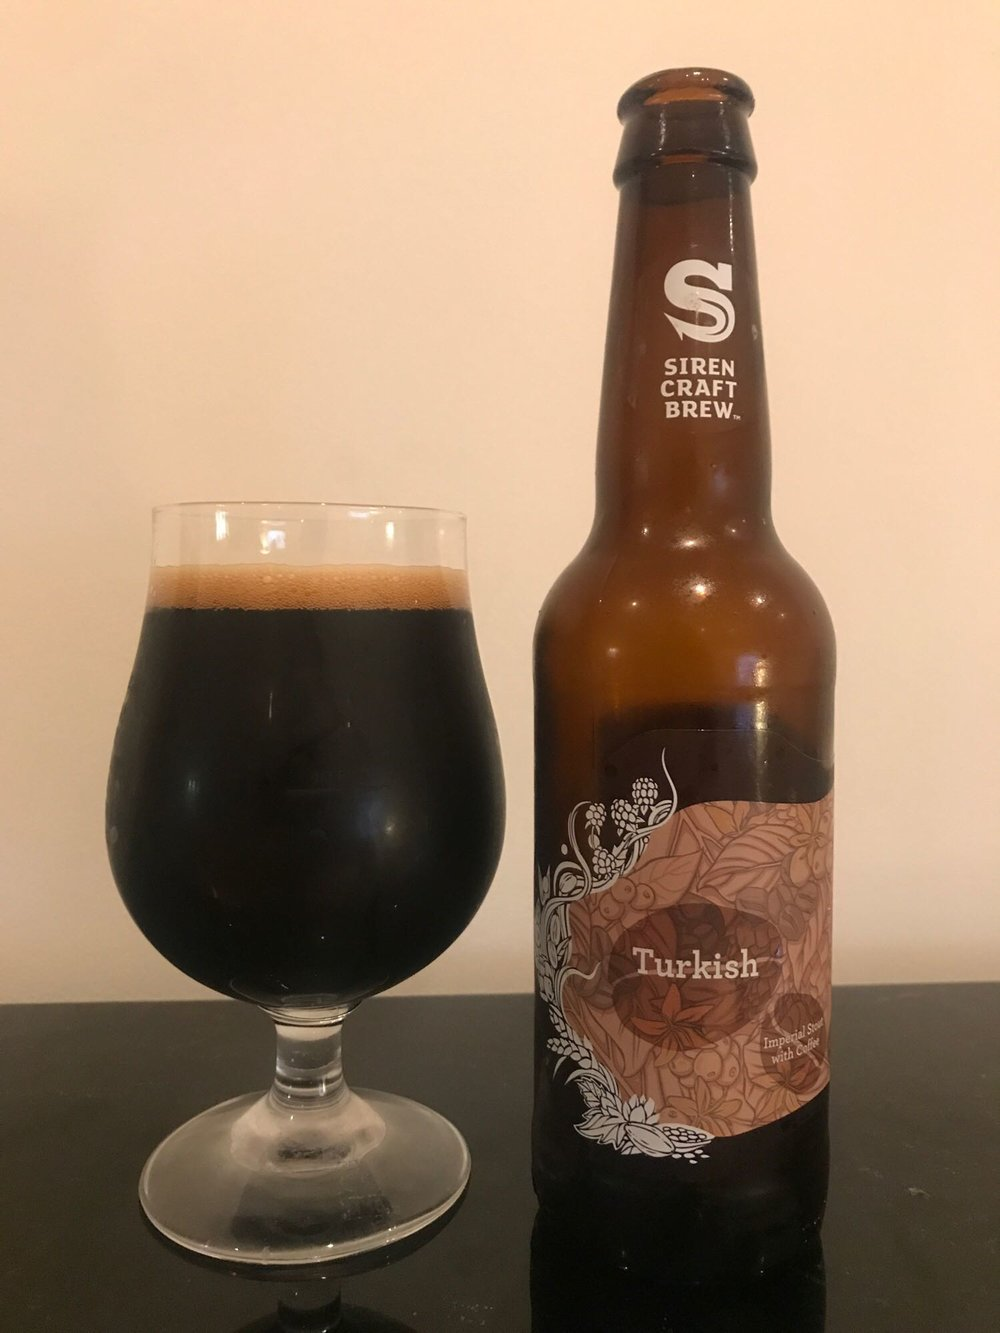 Turkish – 10% Indulgent Imperial Stout with Coffee - What Siren says: Turkish is inspired by the country's robust coffee traditionally served with a piece of rock candy. 45kg of Thai coffee beans, roasted by Reading's Tamp Culture Coffee, are added at three different brewing intervals. The brew also includes the addition of vanilla and orange zest in the spinbot, orange zest and nutmeg in the whirlpool and an incredible 420kg of figs to the fermented beer! The result is lovely smooth spicy notes, a nice citrus sweetness and a sound body.Expectation: Long-time readers of the blog will know that imperial stout is one of my favourite styles of beer. A spicy, citrus, coffee style impy stout has me weak at the knees. I fear it may be a while before I drink this as I have a fair few imperial stouts I need to get through first.Reality: This is bang on. It's exactly what you'd expect from a coffee heavy imperial stout. I didn't really get the citrus notes but the spice came through a little. All in all it is a solid imperial stout and has the right thickness to give it a luxurious taste. Off to a good start. Hope the rest live up to this beginning.